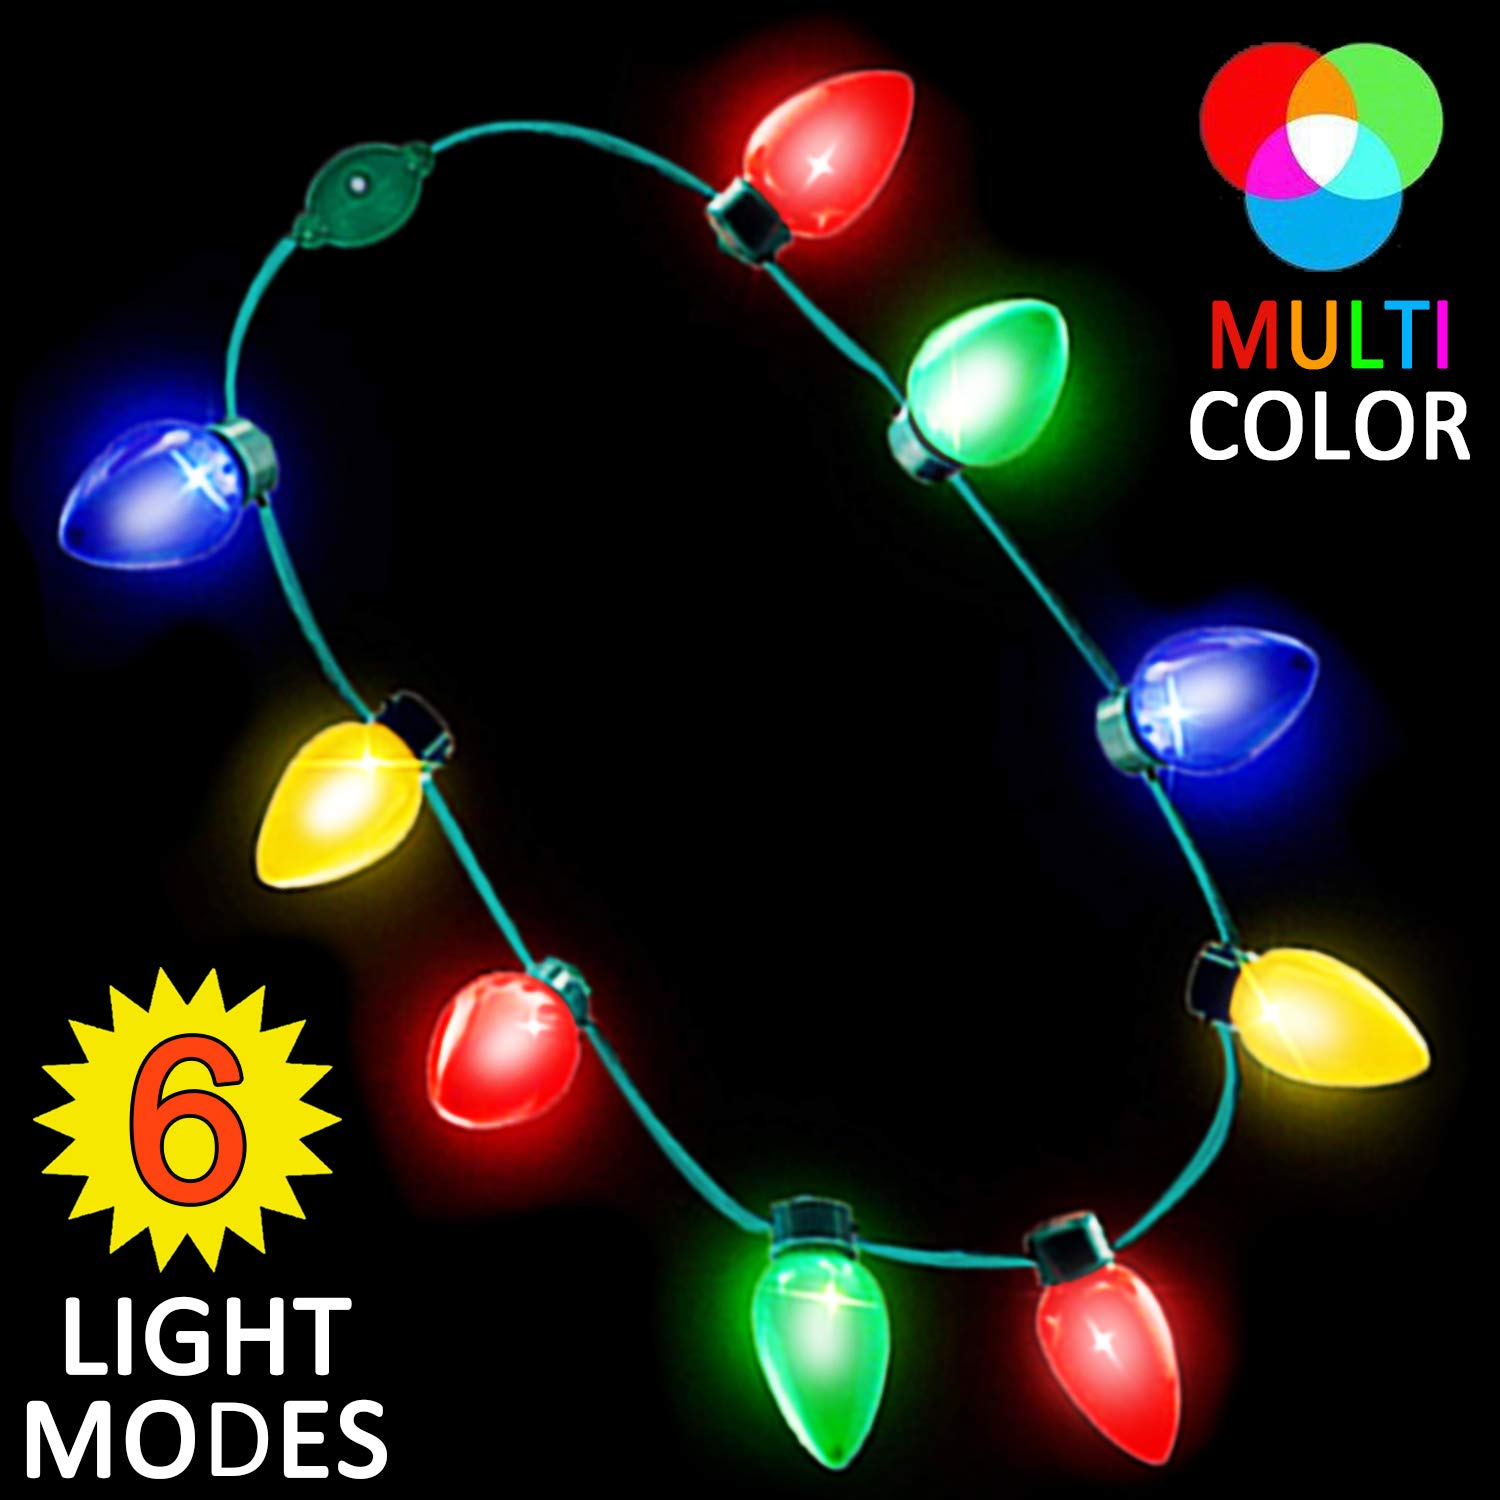 Holiday Xmas Party Favors Flashing Light Funny Necklace for Kids Girls Boys Adults Ugly Xmas Gifts Christmas Decorations Colorful String Lights Batteries Included 10 Pack Christmas Light Necklace Bulb